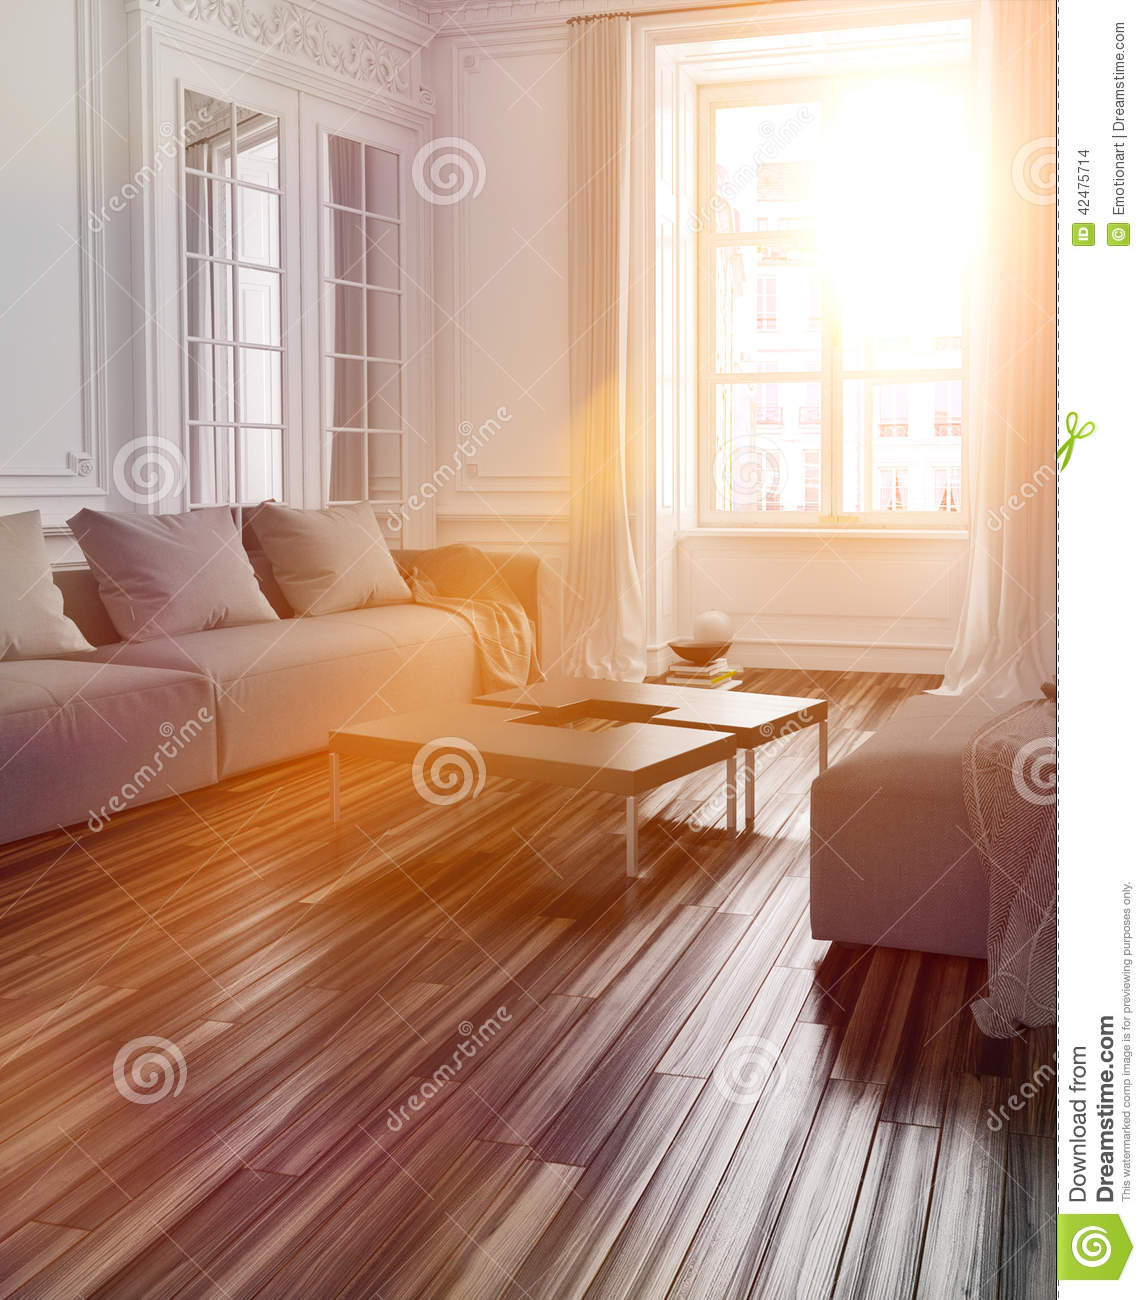 Bright sunlight streaming into a living room stock for Sunlight windows